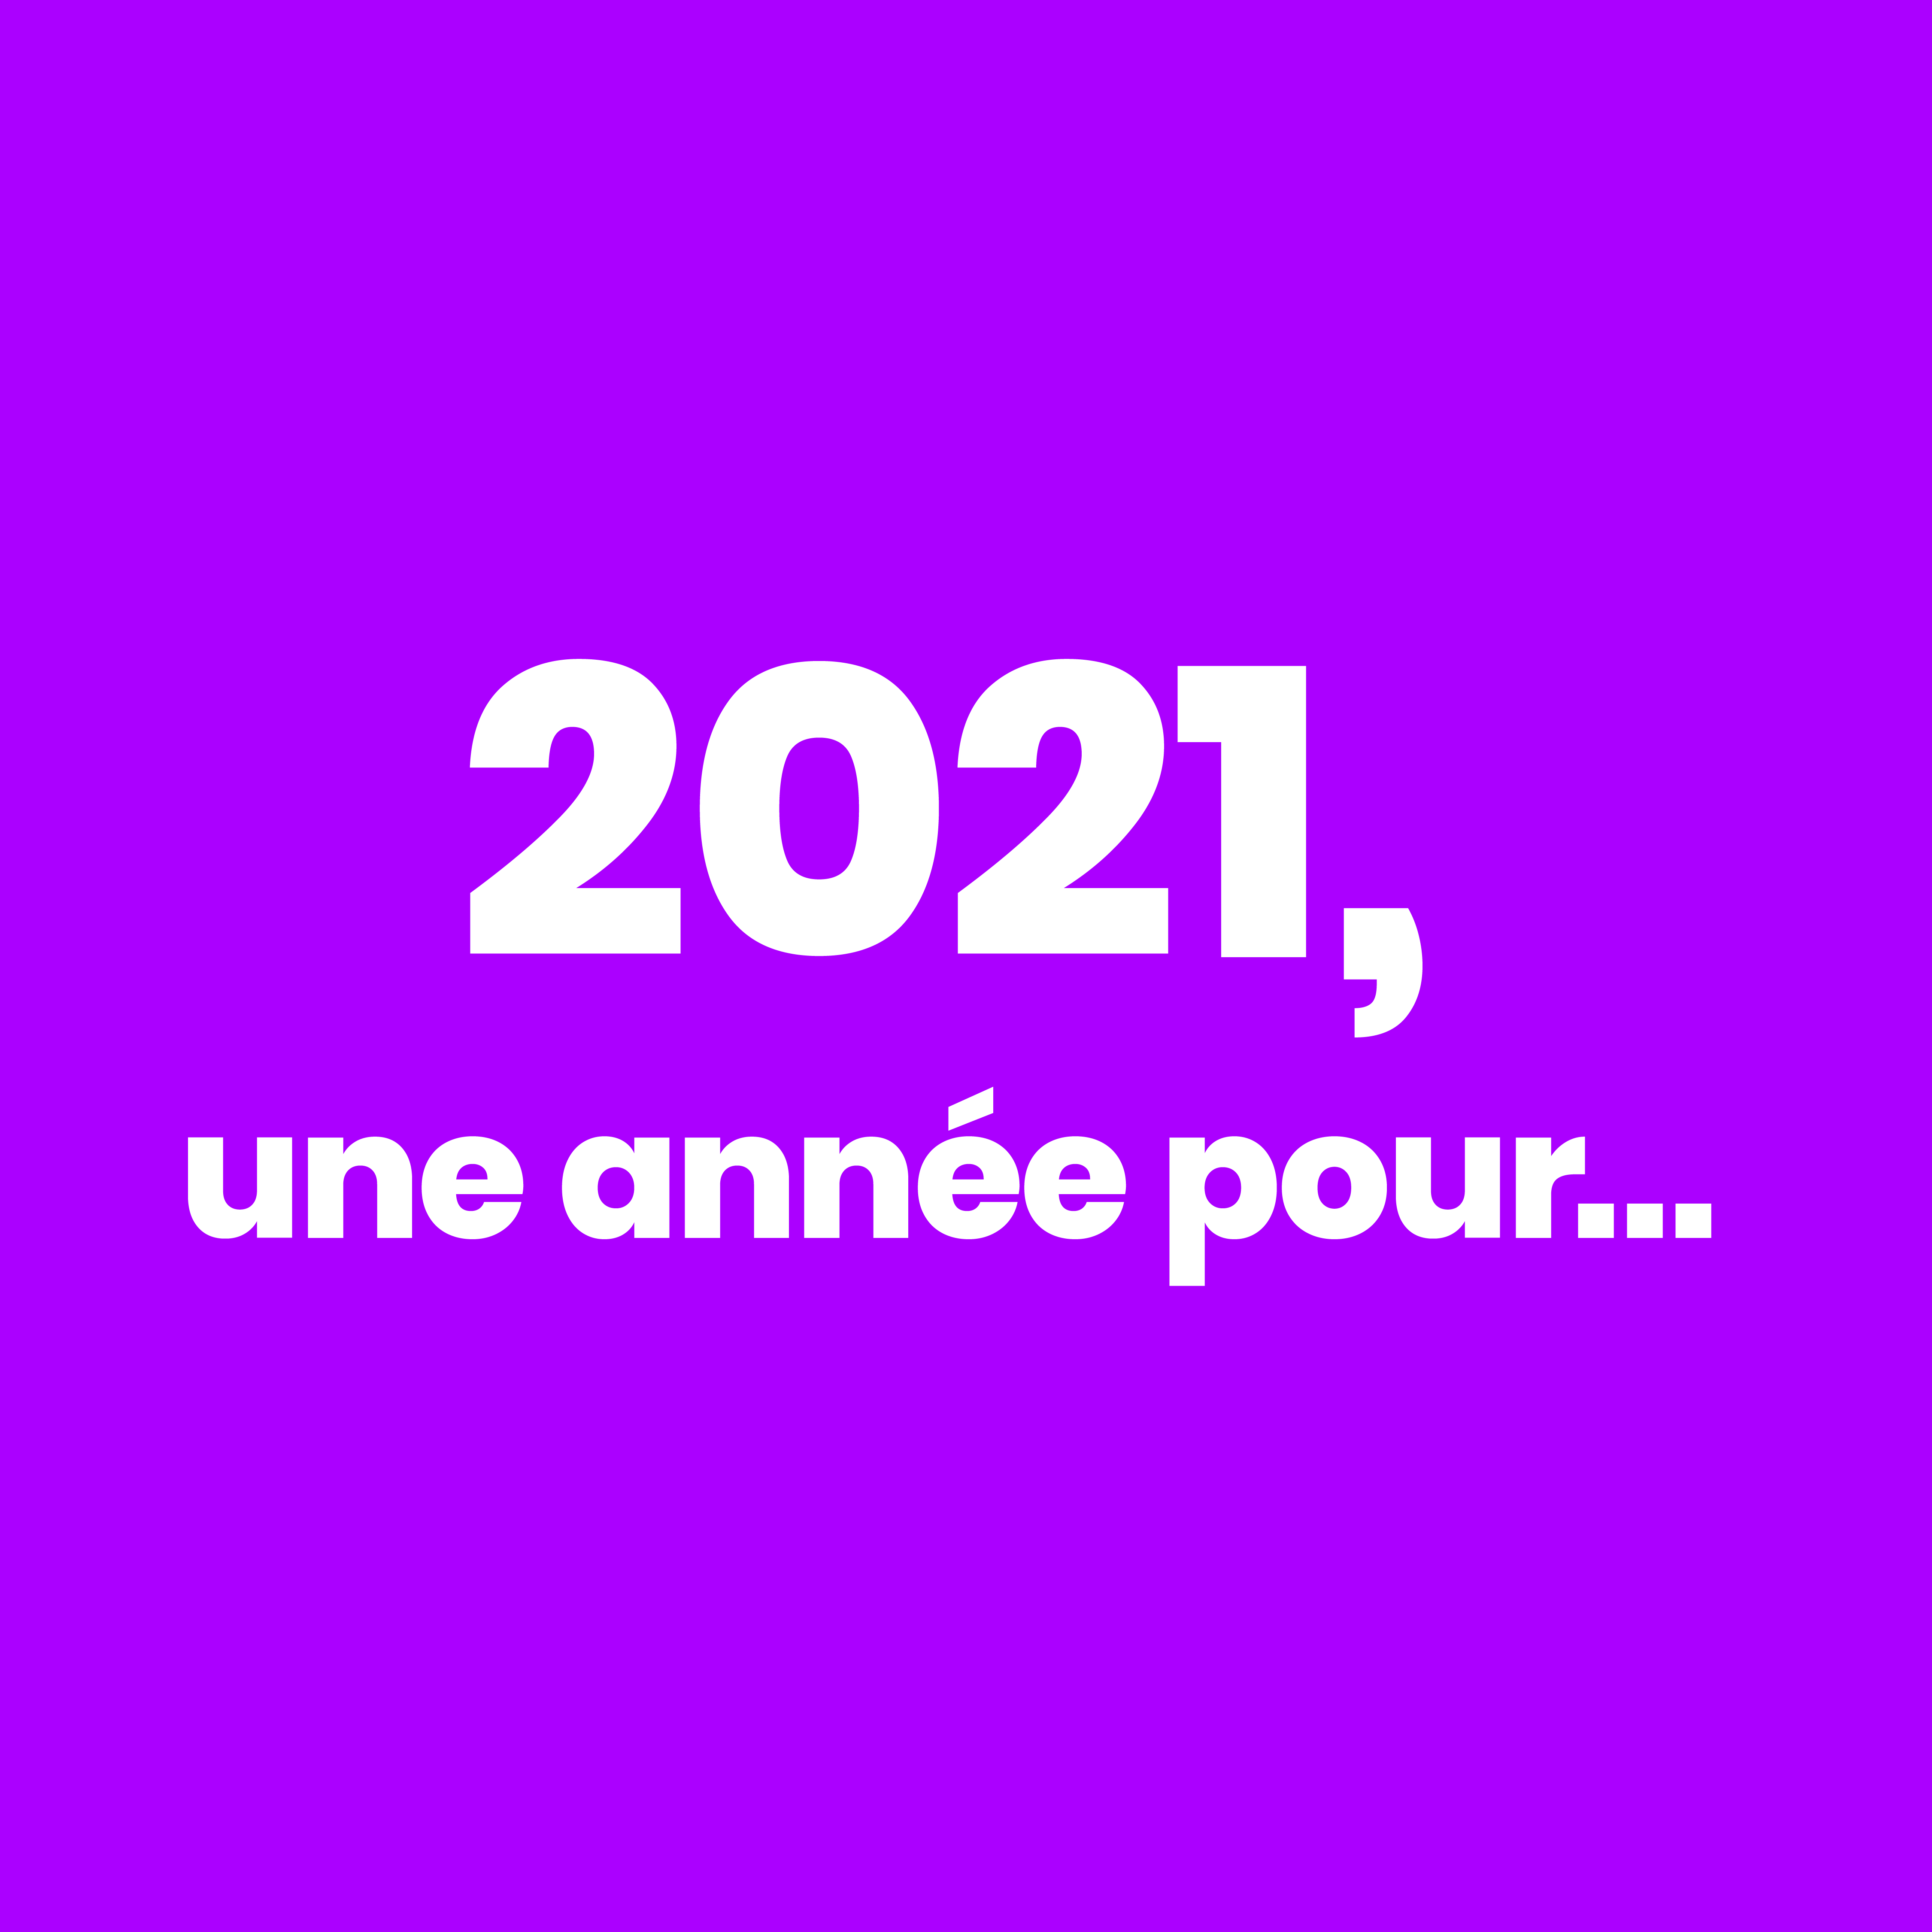 #2021UneAnneePour